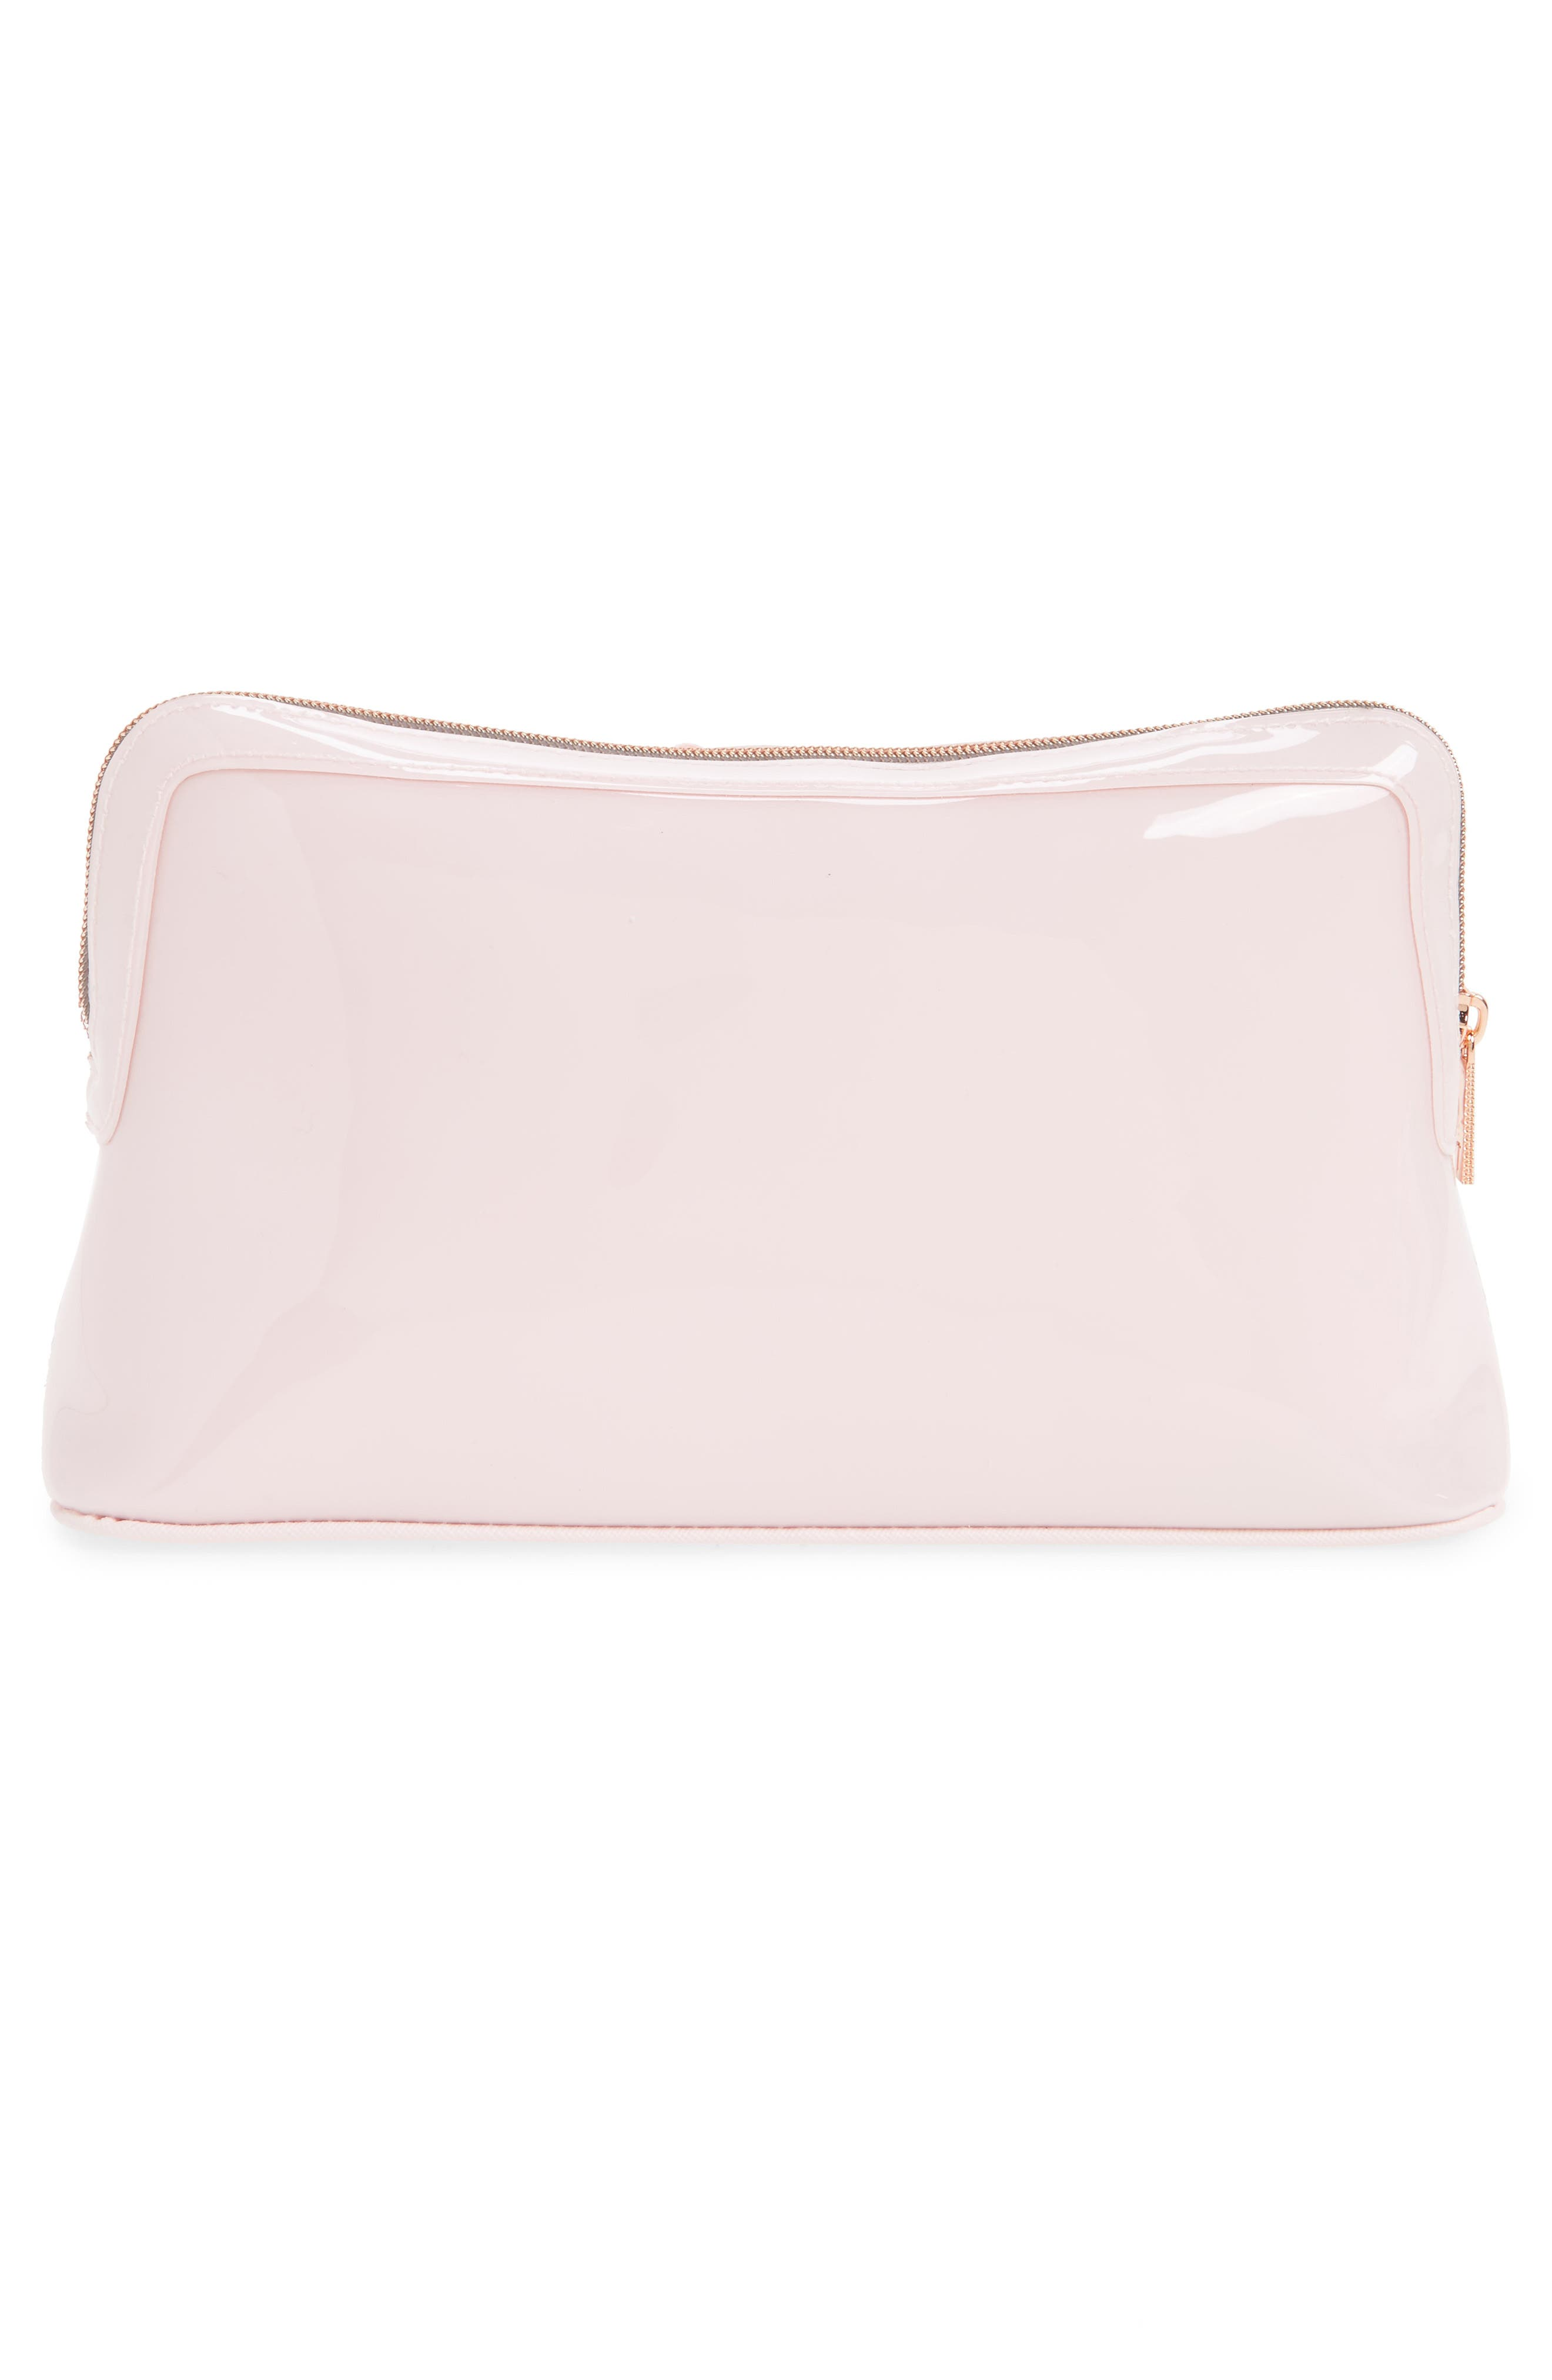 Jana Bow Cosmetic Case,                             Alternate thumbnail 2, color,                             Dusky Pink